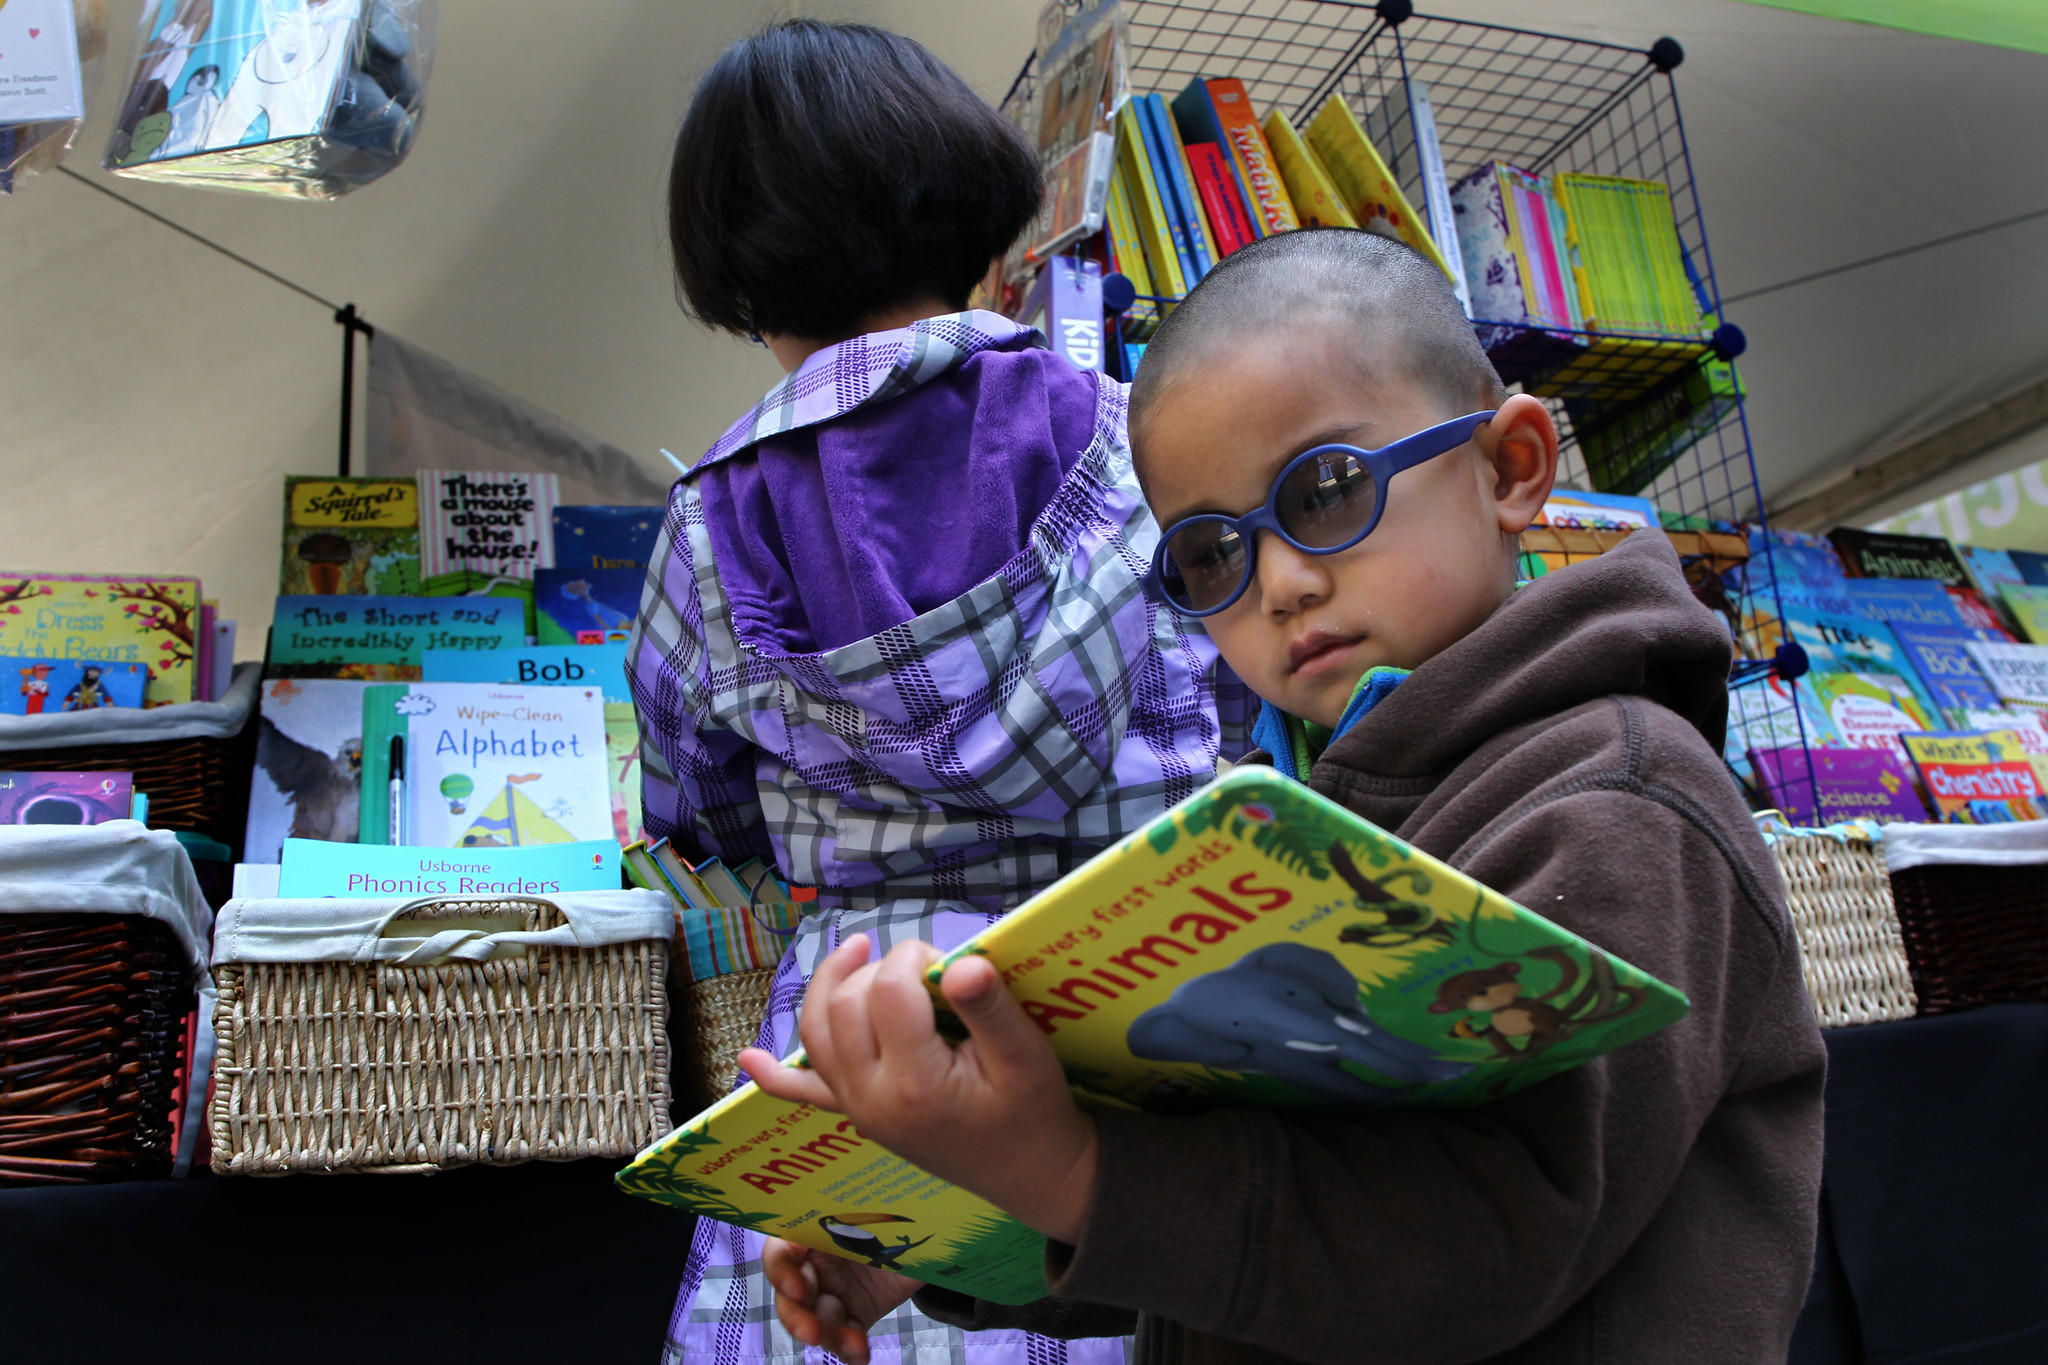 Cyrus Di, 4, along with his sister Cynthia, 10, and their parents check out Usborne Books & More at Printers Row Lit Fest.